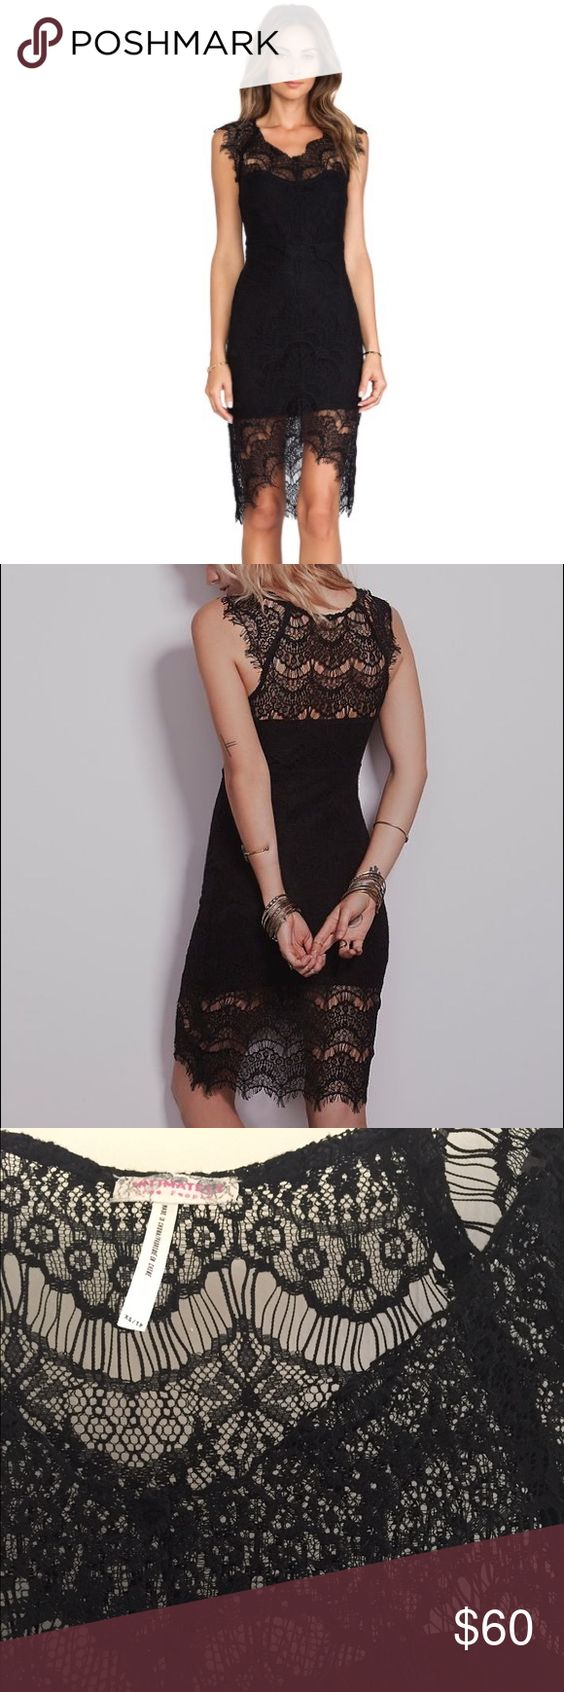 BNWT Free People Peekaboo Lace Slip in black This dress is absolutely gorgeous but I've never found a reason to wear it! Free People Dresses High Low